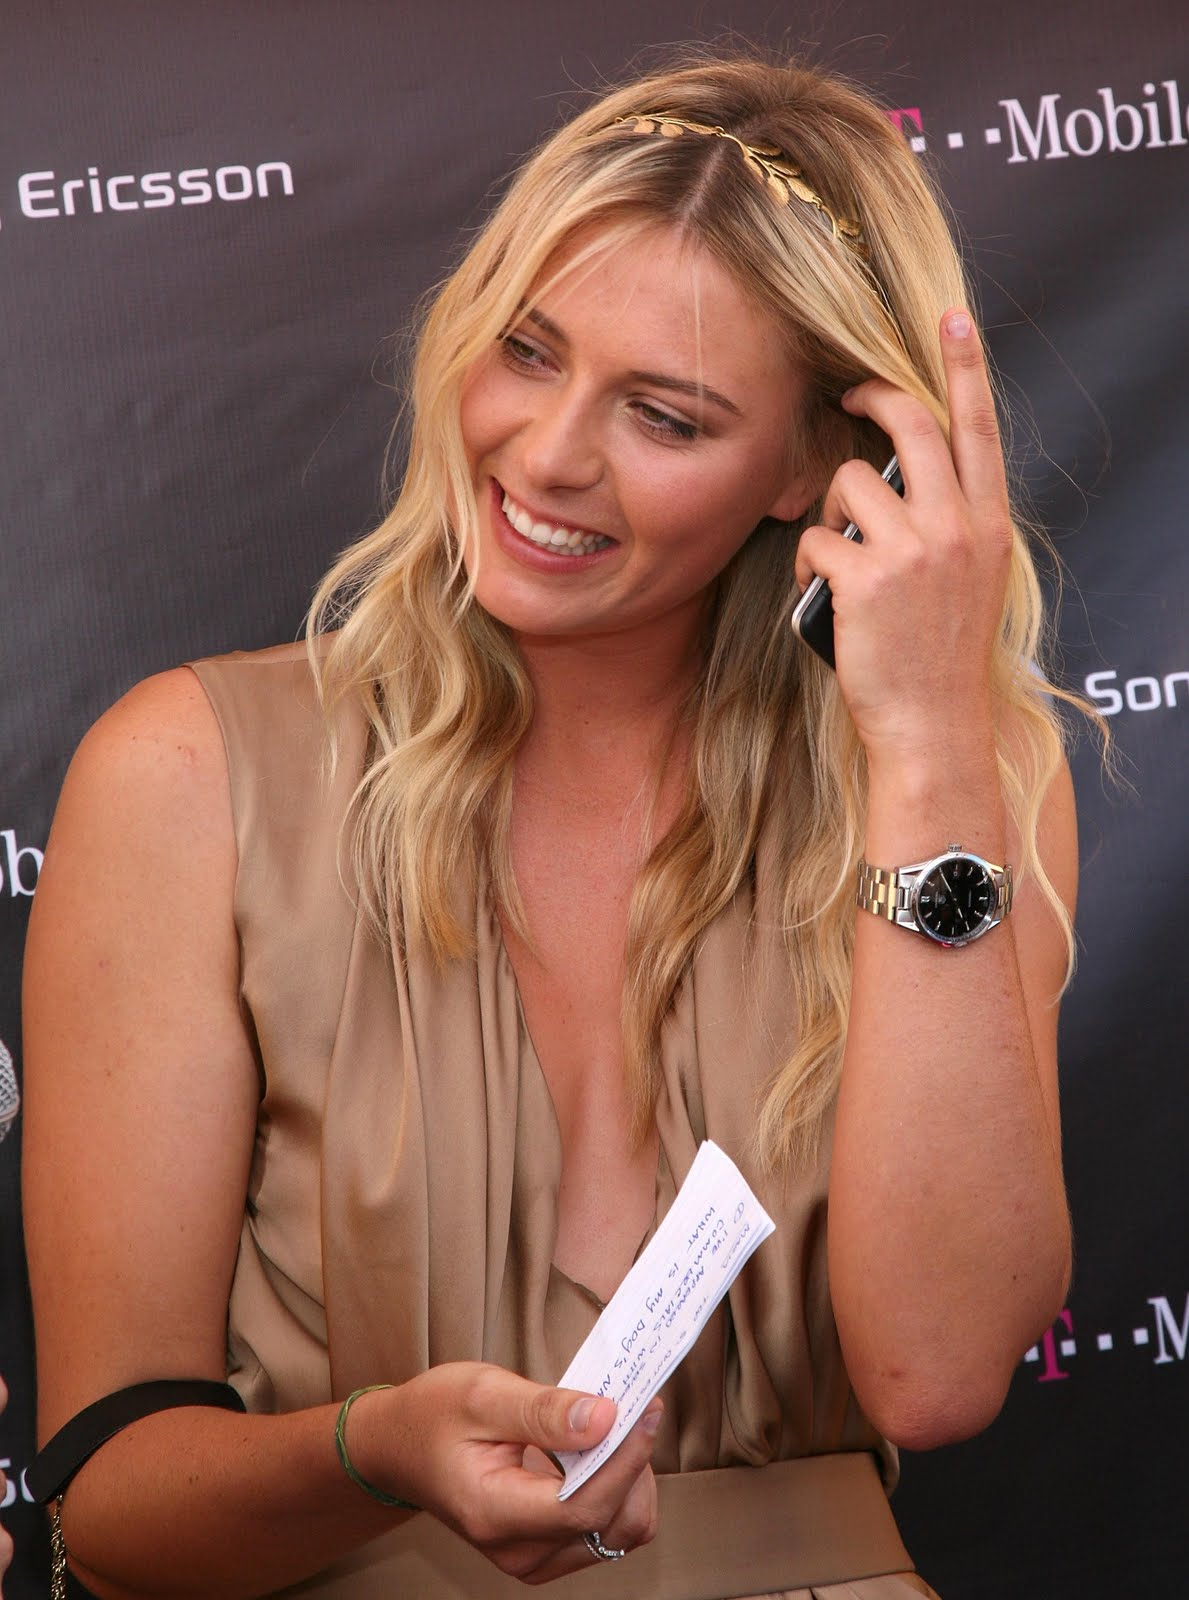 http://2.bp.blogspot.com/_b75UL5G9BPA/SwNnH49ZjfI/AAAAAAAAHx0/uiXLNnwf00I/s1600/78723_ie_-_Maria_Sharapova_at_the_T-Mobile_and_Sony_Ericsson_Maria_Sharapova_Look-a-like_contest_at_the_new_T-Mobile_store_in_Canoga_Park_-_Oct__31_2009_9825_122_410lo-707311.jpg